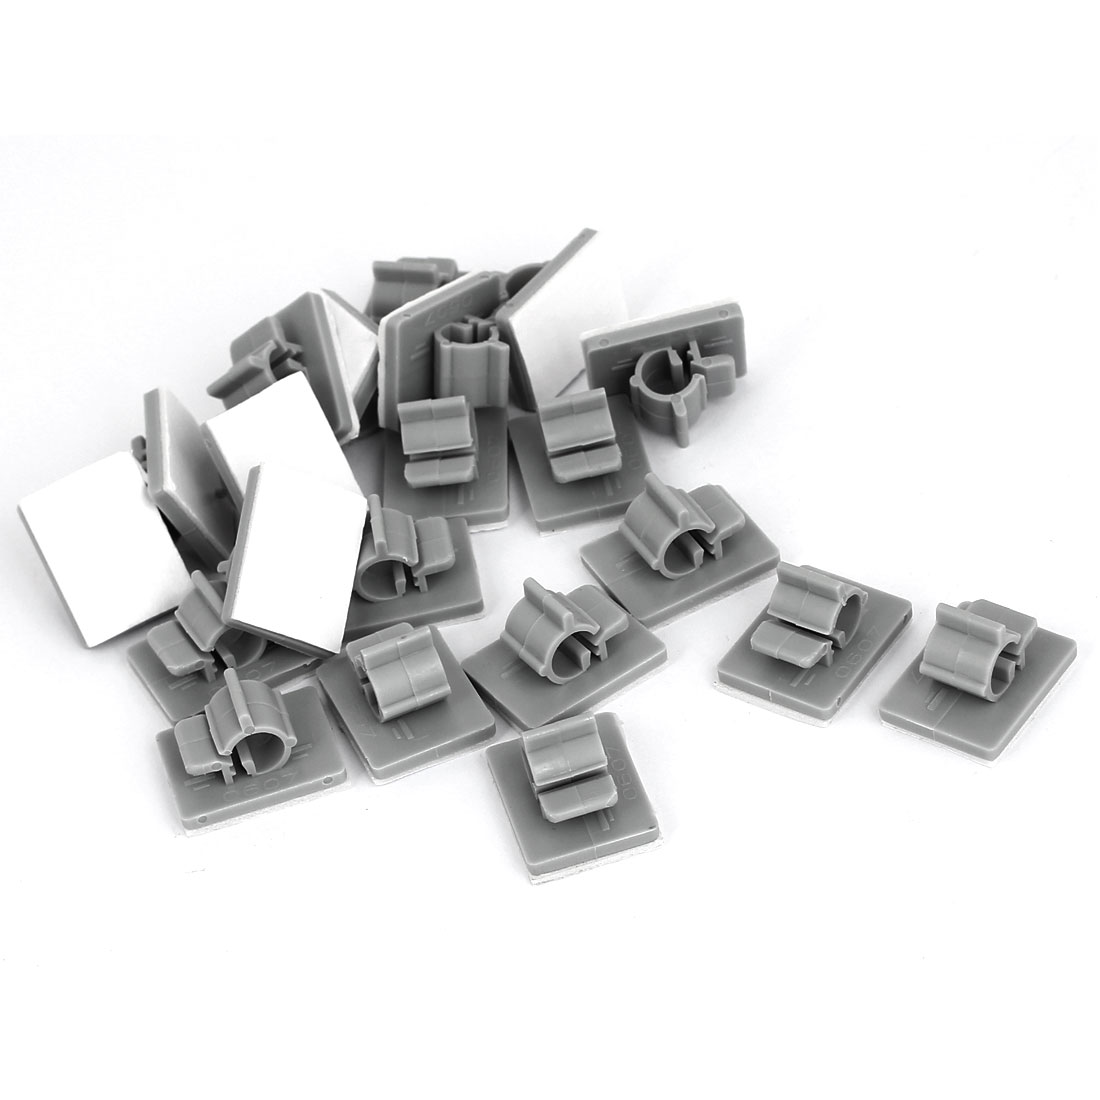 Unique Bargains 21pcs 6mm-7mm Cable Wire Holder Plastic Adhesive Clips Clamps Organizer Gray